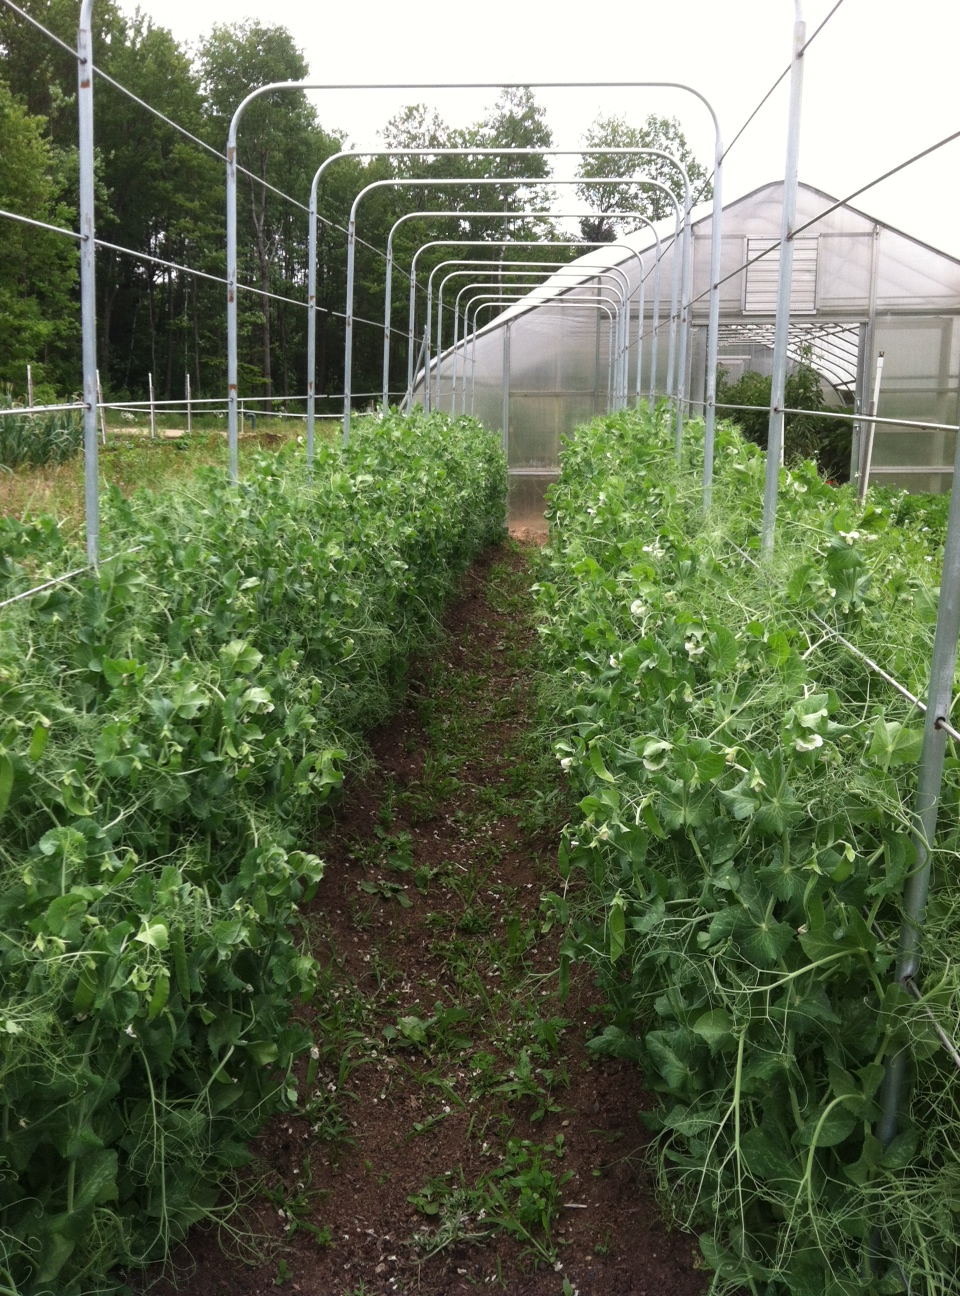 Pea vines well supported by trellis.